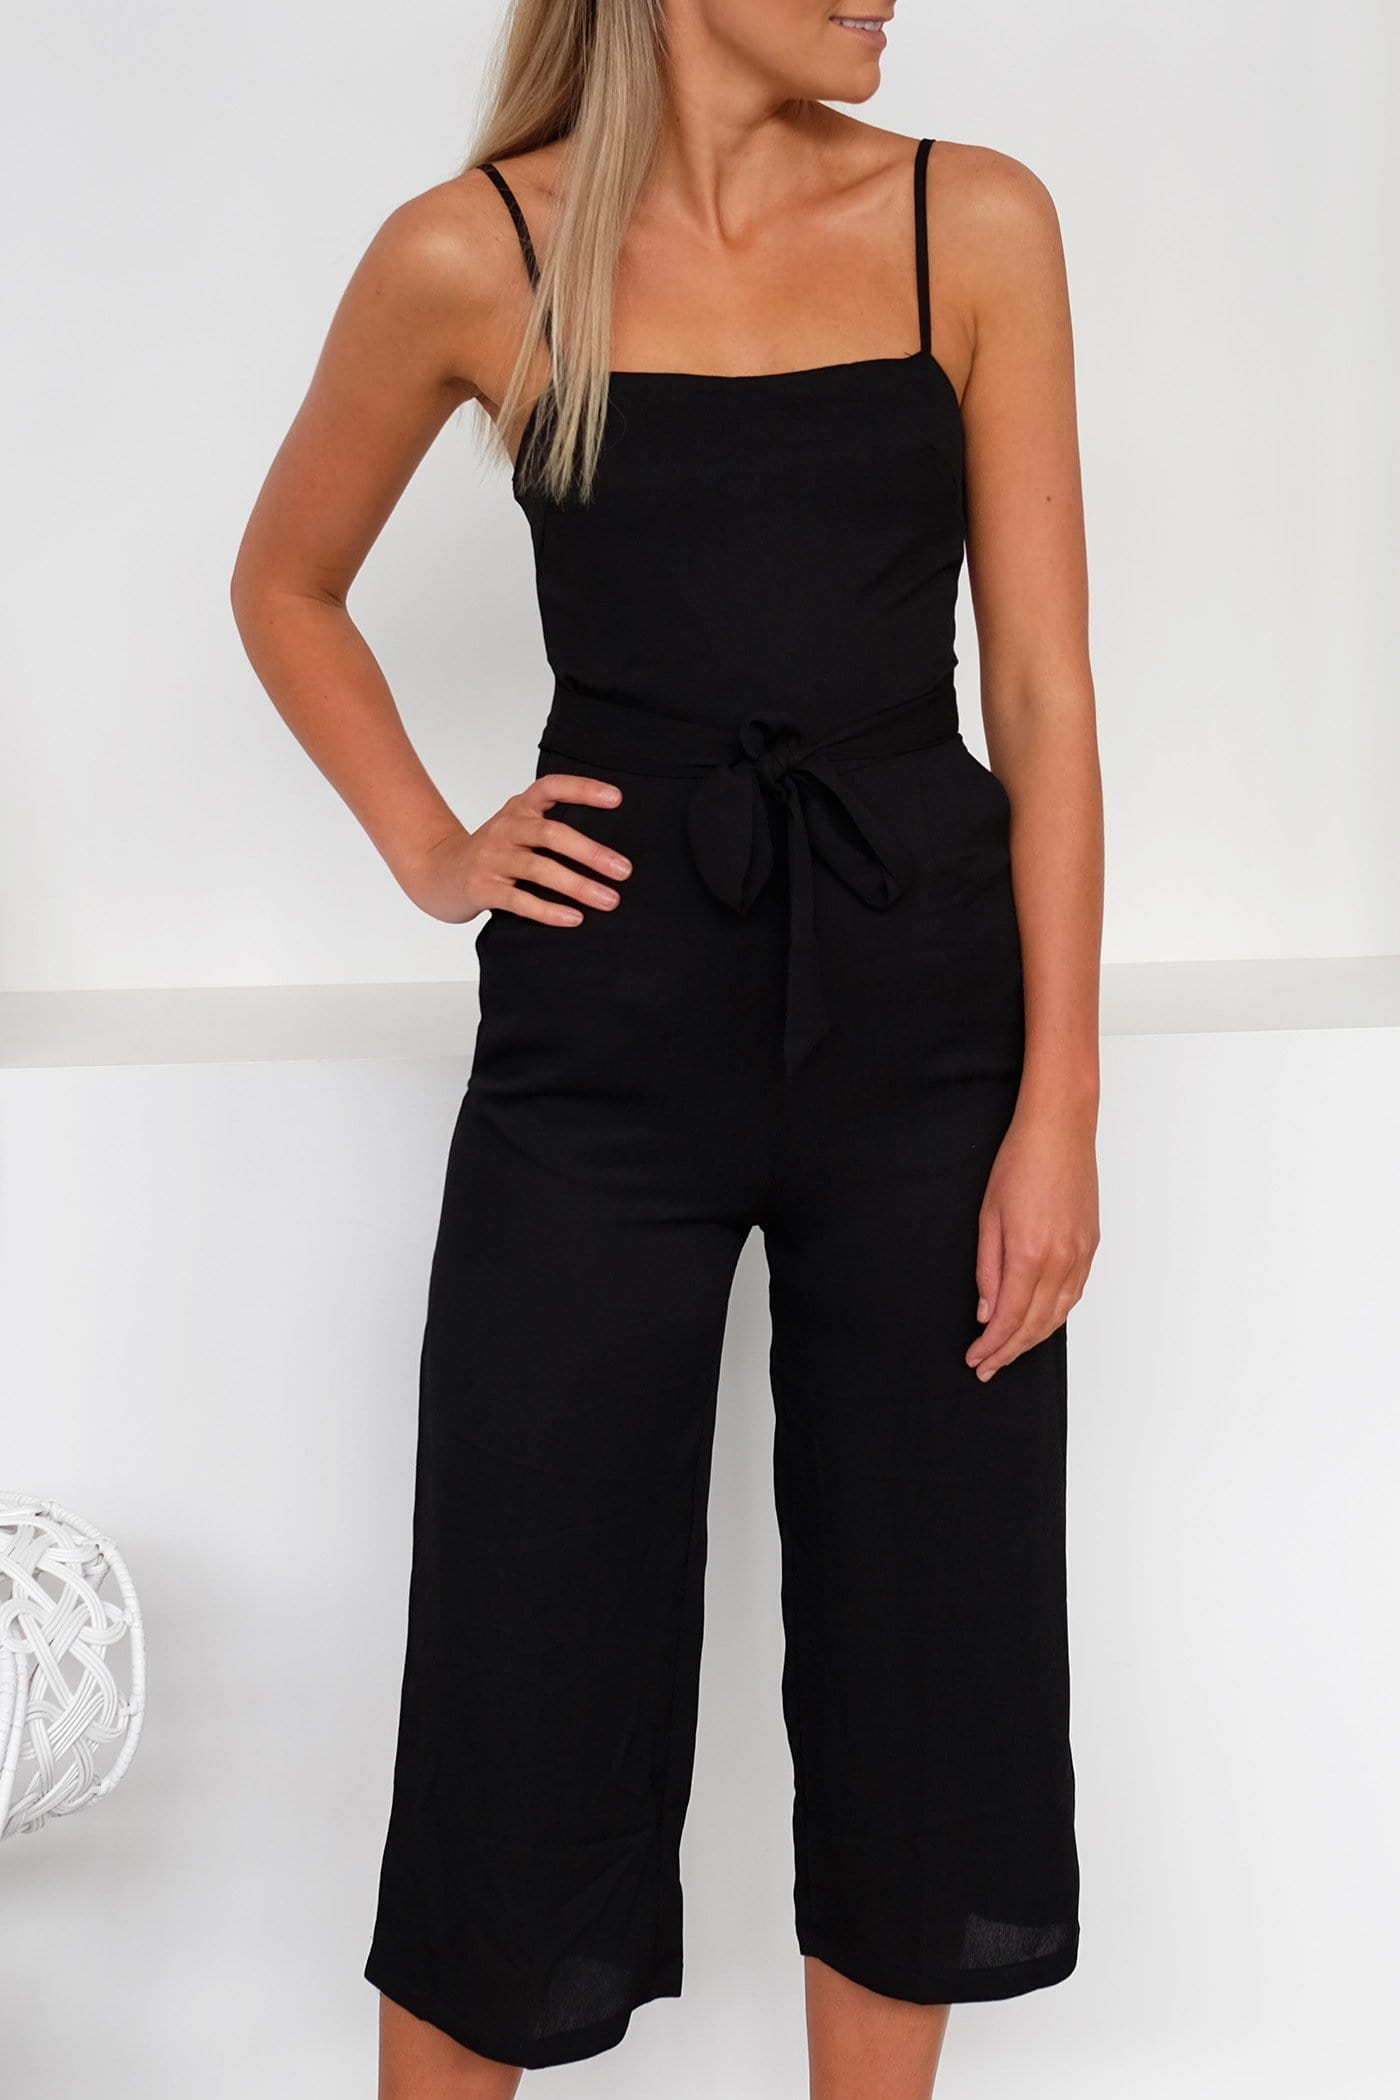 Forget You Jumpsuit Black